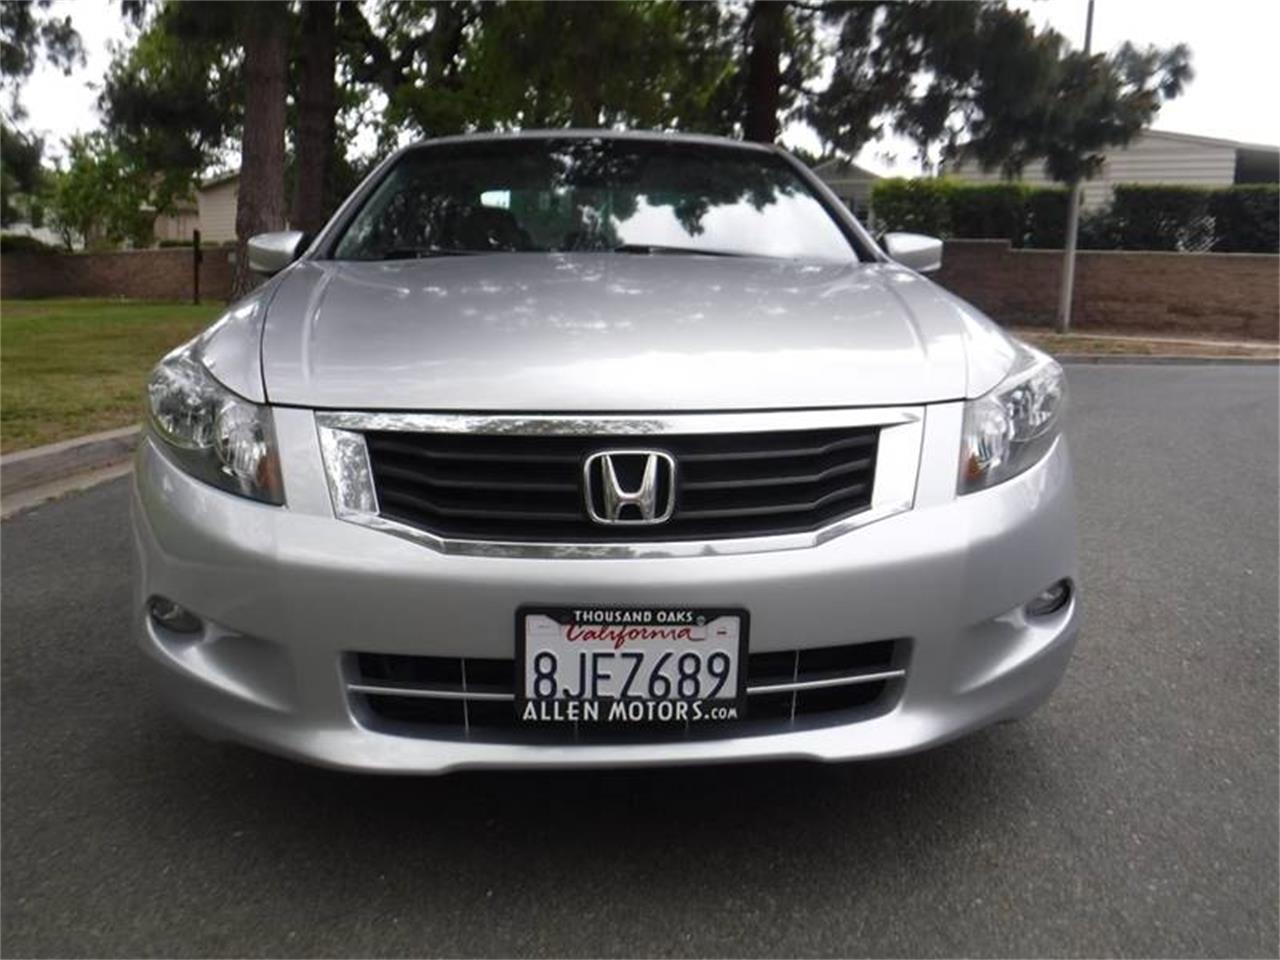 Large Picture of '08 Accord - PTAF